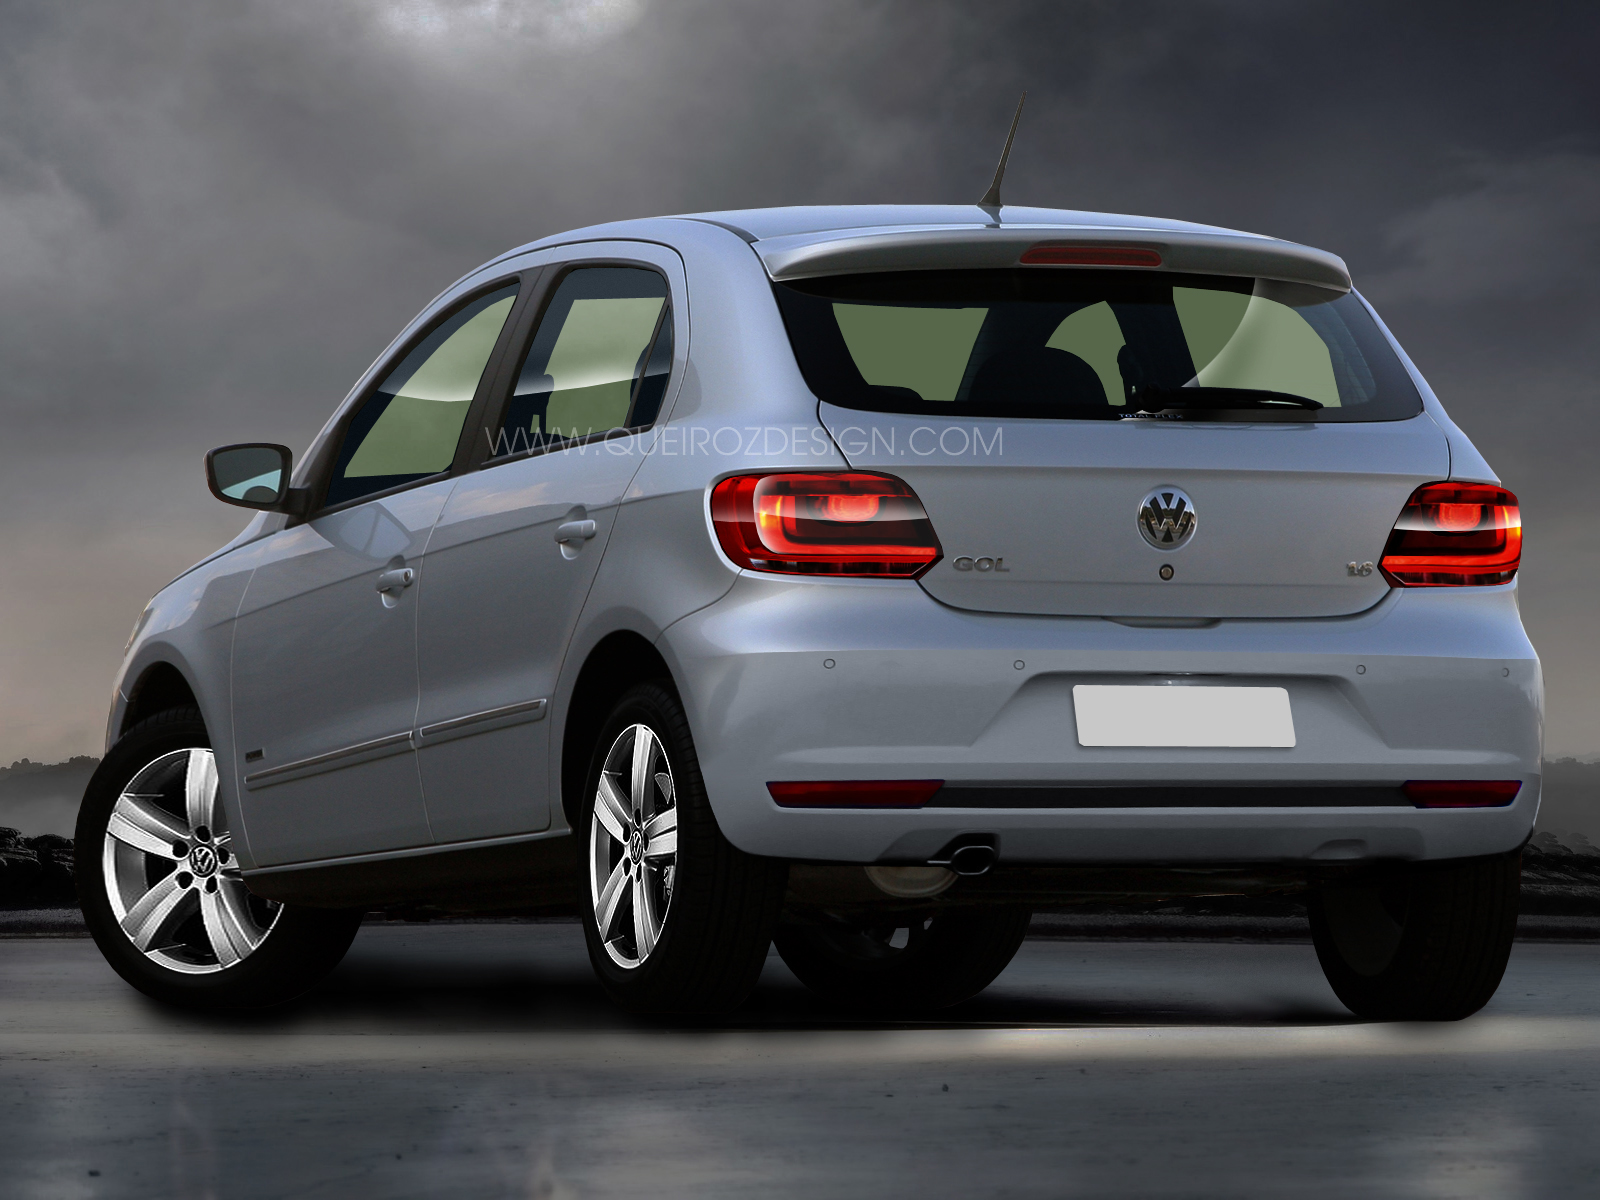 Volkswagen g6 photo - 2